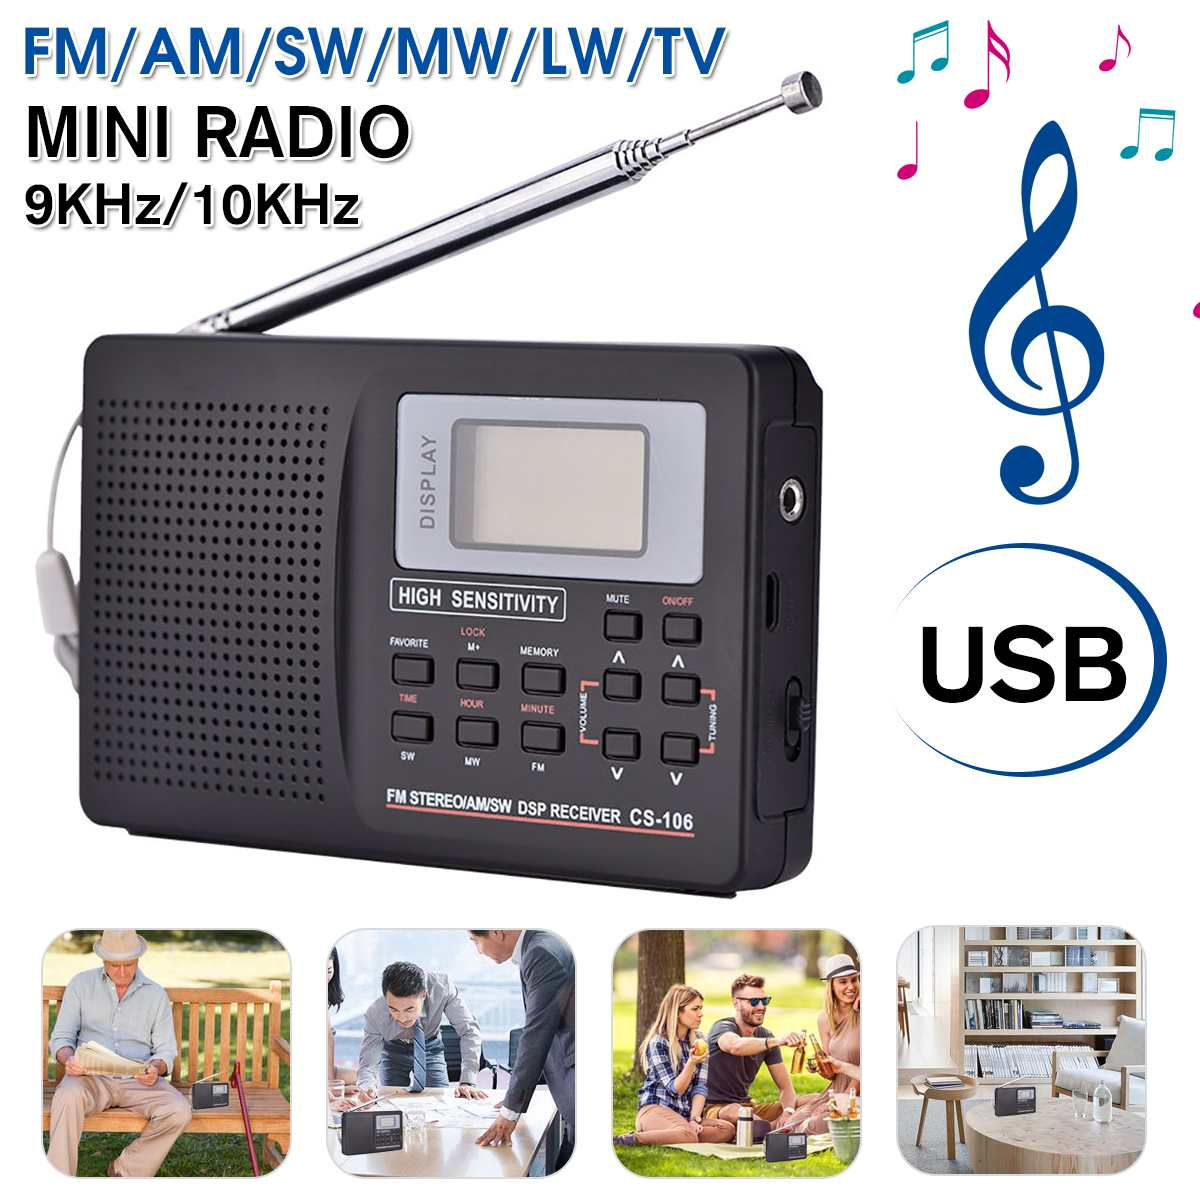 NEW Mini FM Radio Portable Radio Receiver Support AM/FM/SW/MW/LW Full Frequency Radio Receiver Support Alarm Clock for Elderly